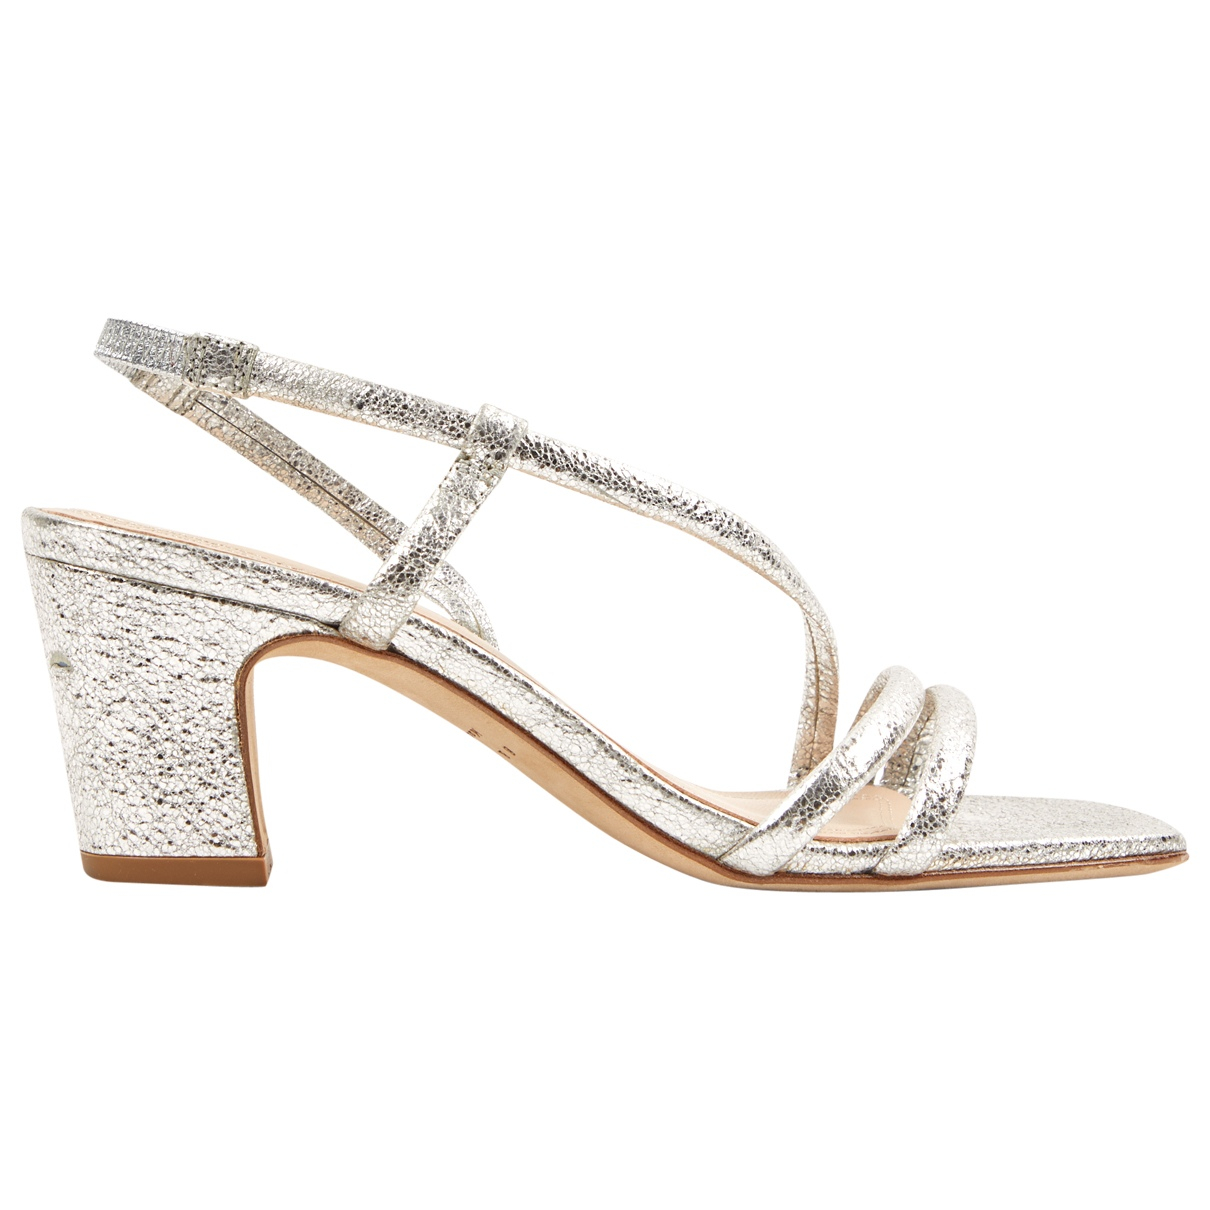 Sandro \N Silver Leather Sandals for Women 36 EU